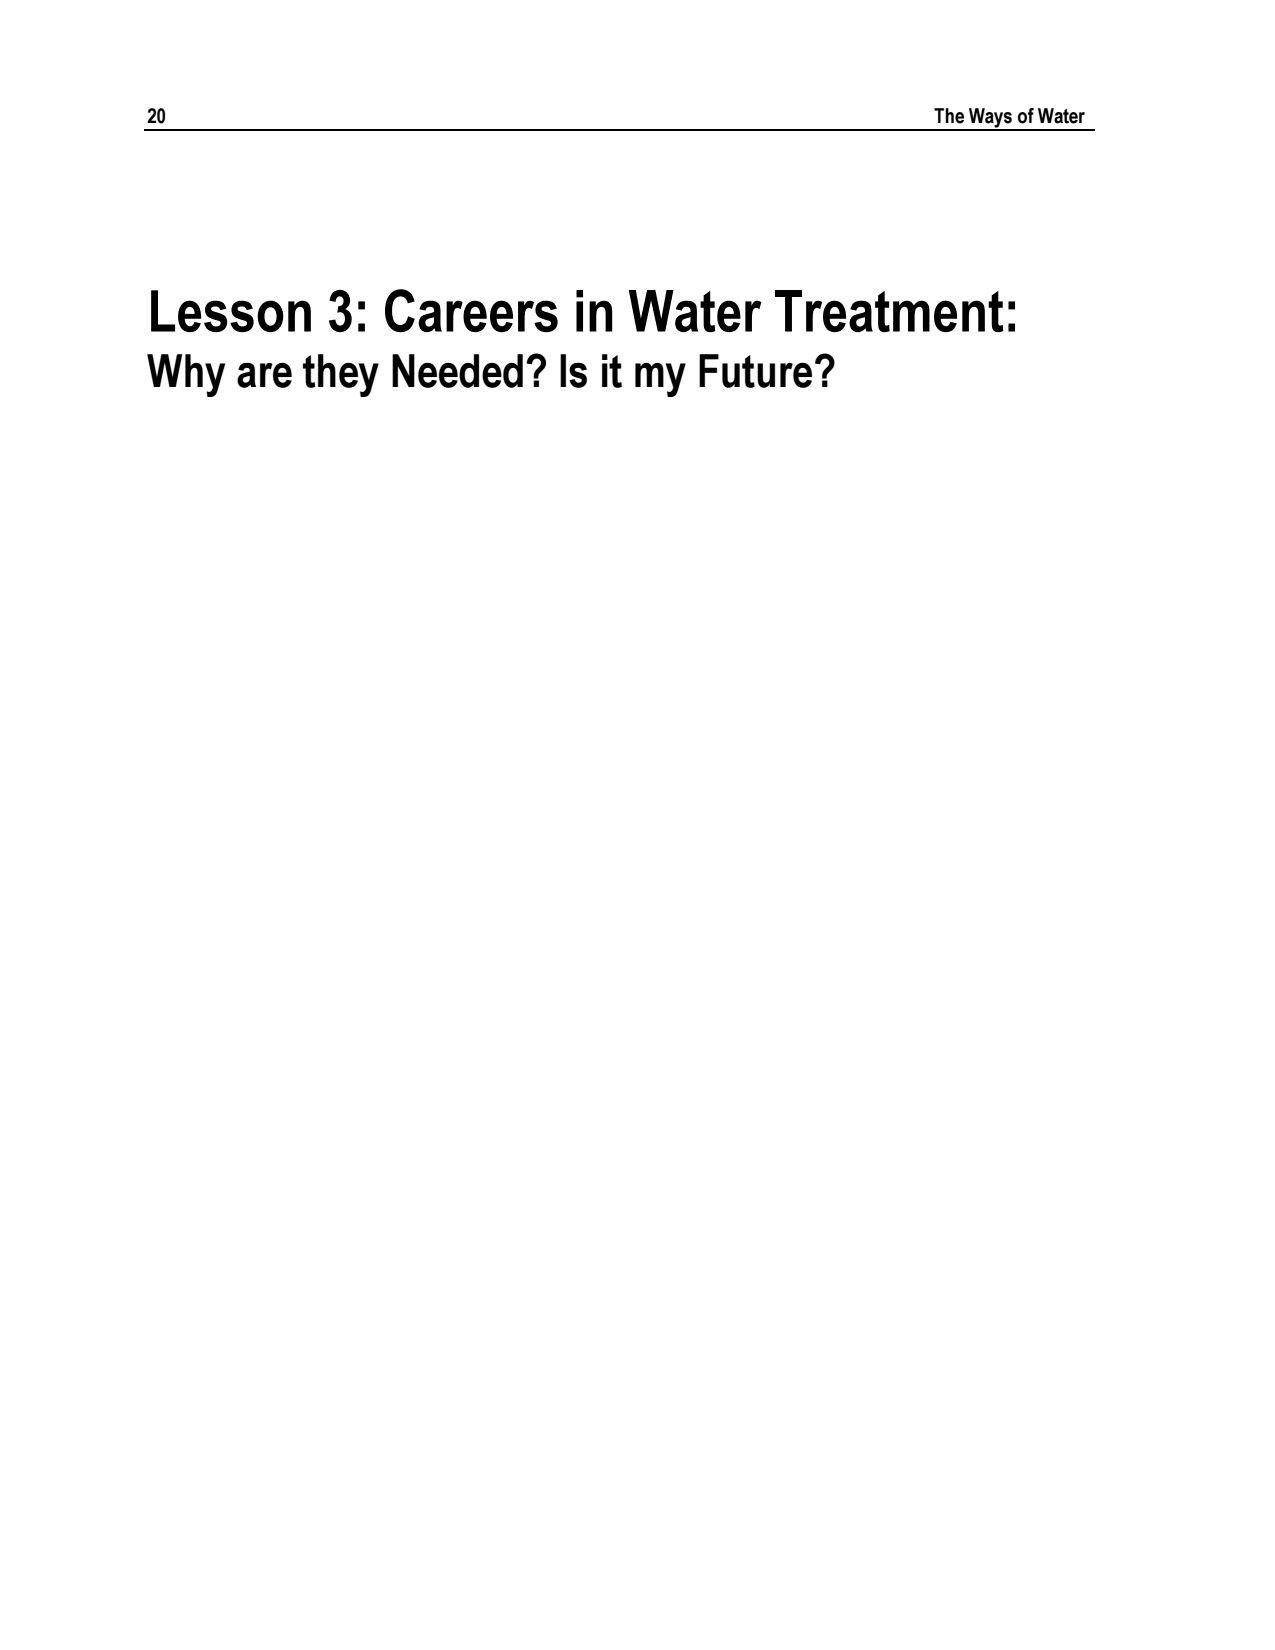 Lesson 3 – Careers In Water Treatment